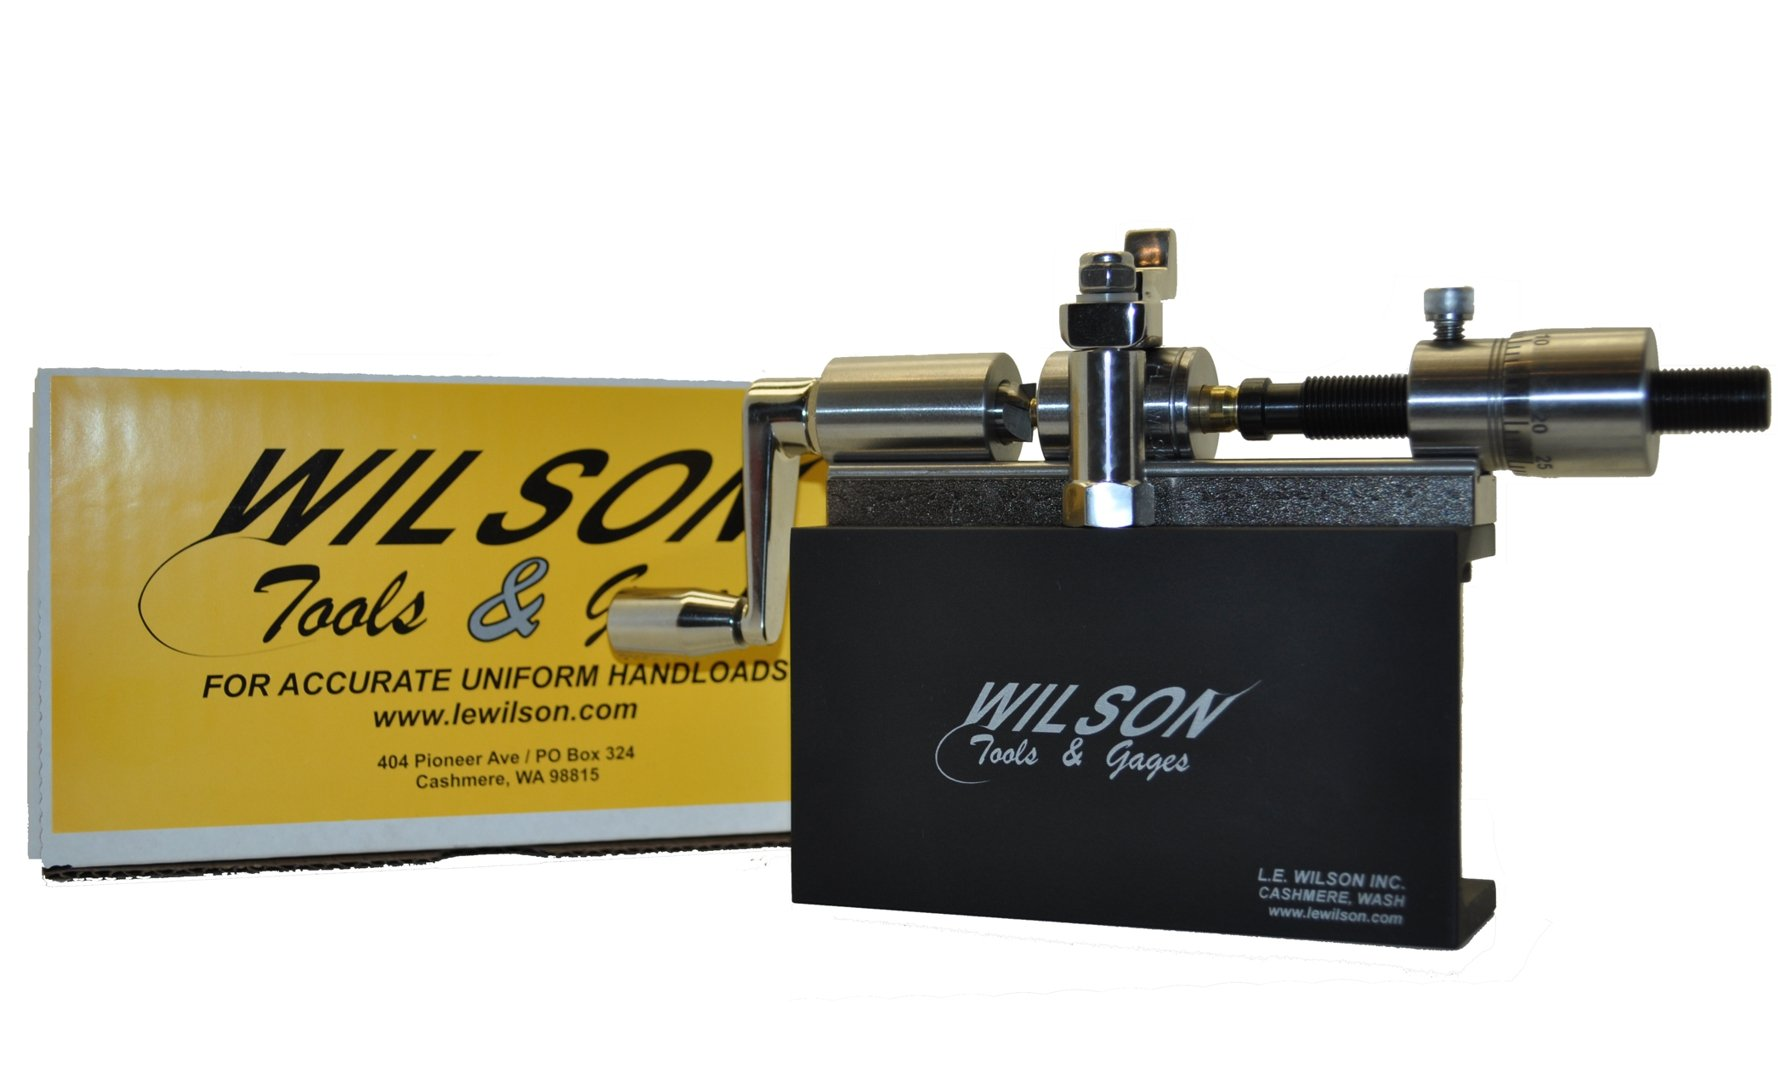 L.E. Wilson CT-SSKIT Case Trimmer Kit Stainless Steel with Micro Adjustment, Stand & Clamp Included, Stainless Steel/Black Oxide/Electro Plated